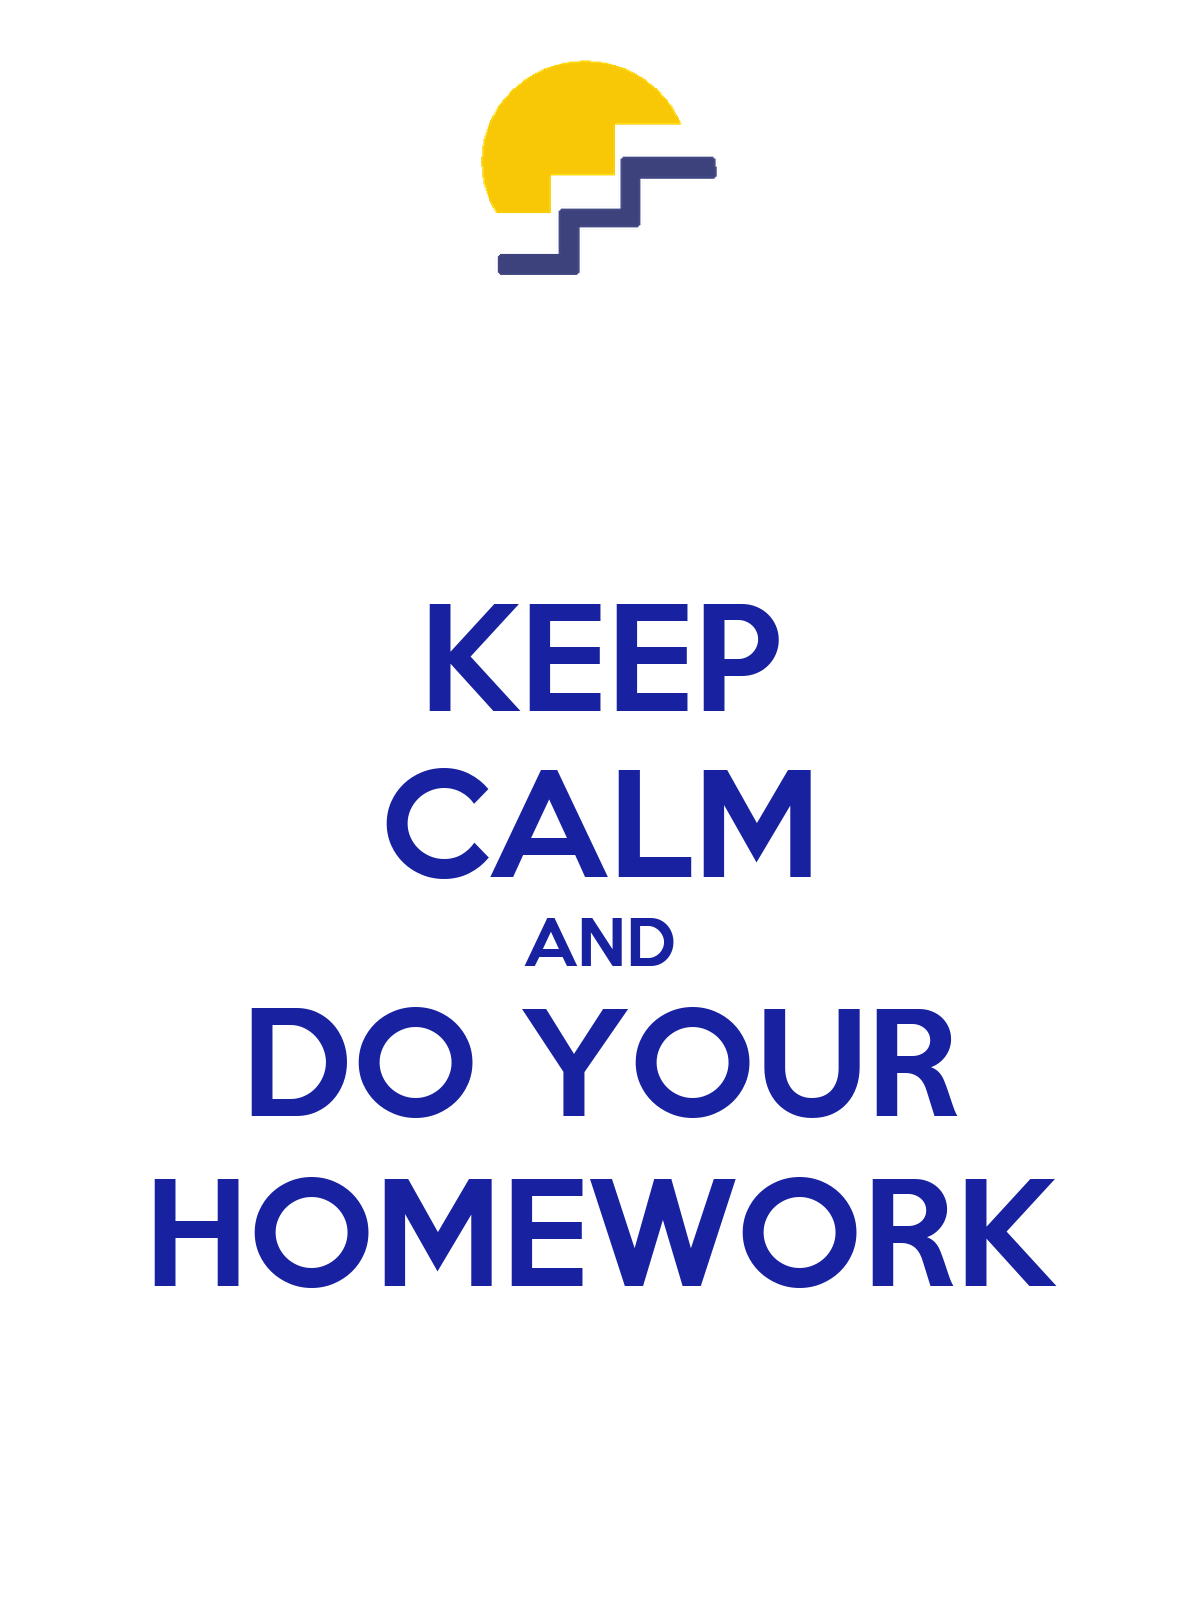 Is there a website that will do your homework for you